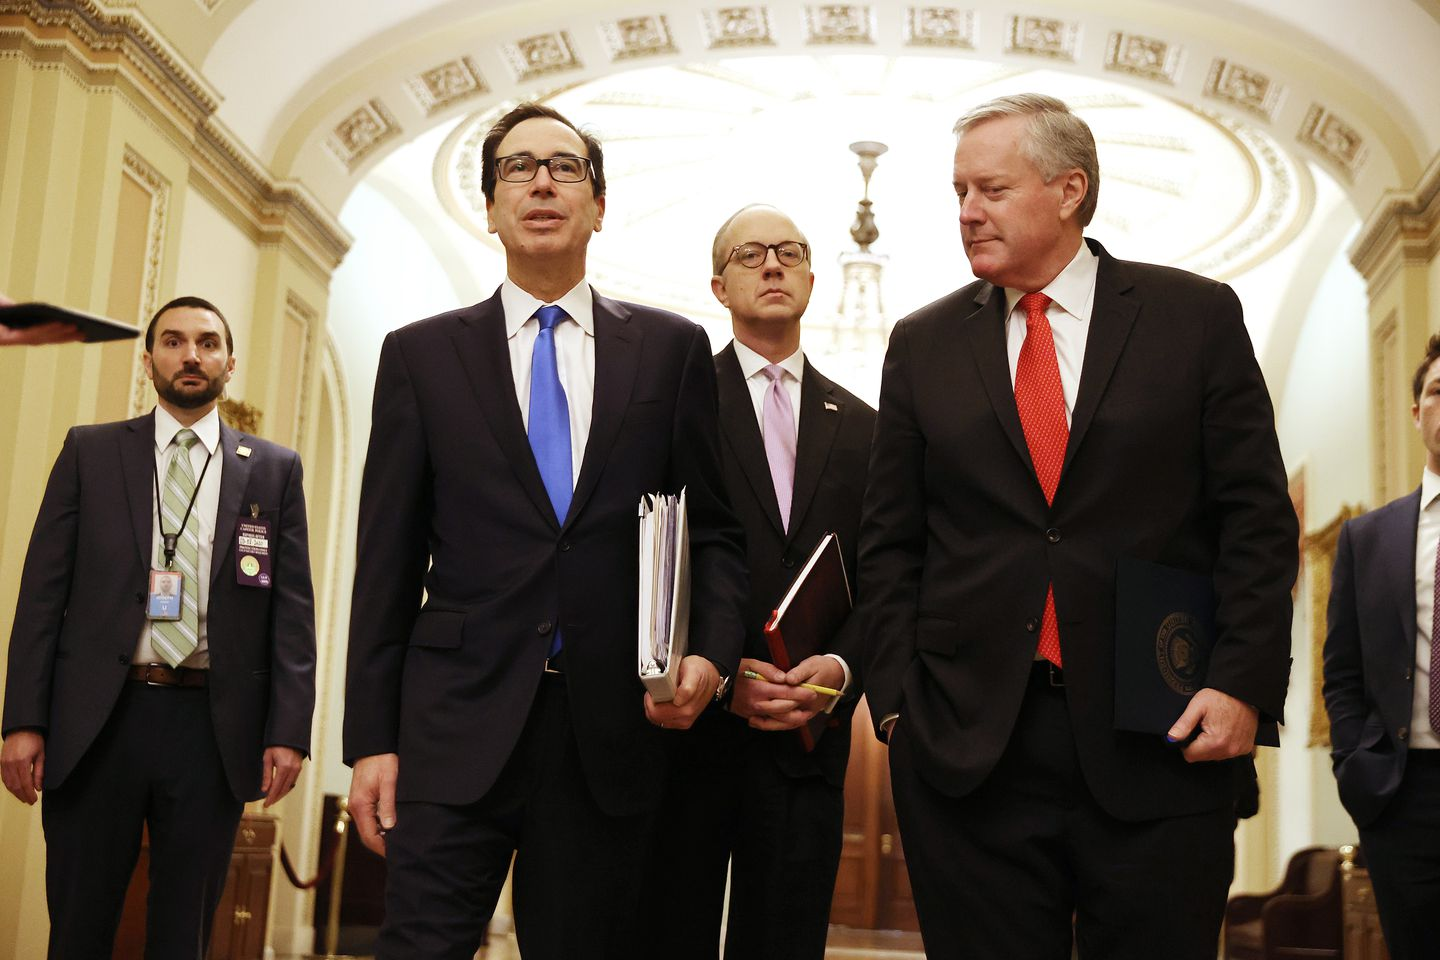 Treasury Secretary Steven Mnuchin arrived at the US Capitol with White House Director of Legislative Affairs Eric Ueland (center) and White House Chief of Staff Mark Meadows (right) to continue negotiations on a $2 trillion economic stimulus in response to the coronavirus pandemic Tuesday.